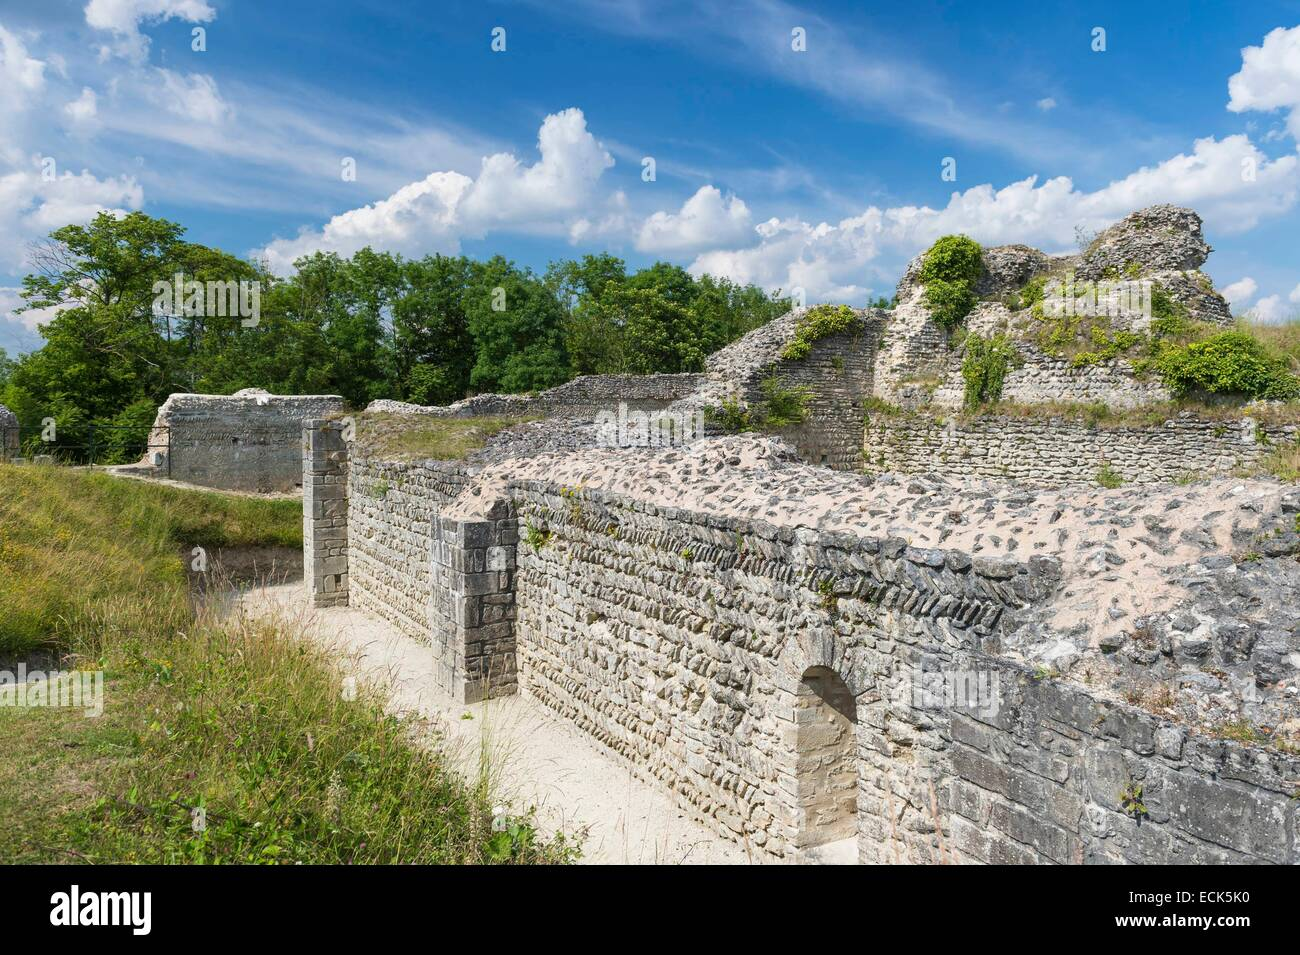 France, Eure, Ivry la Bataille, late 10th century military fortress - Stock Image